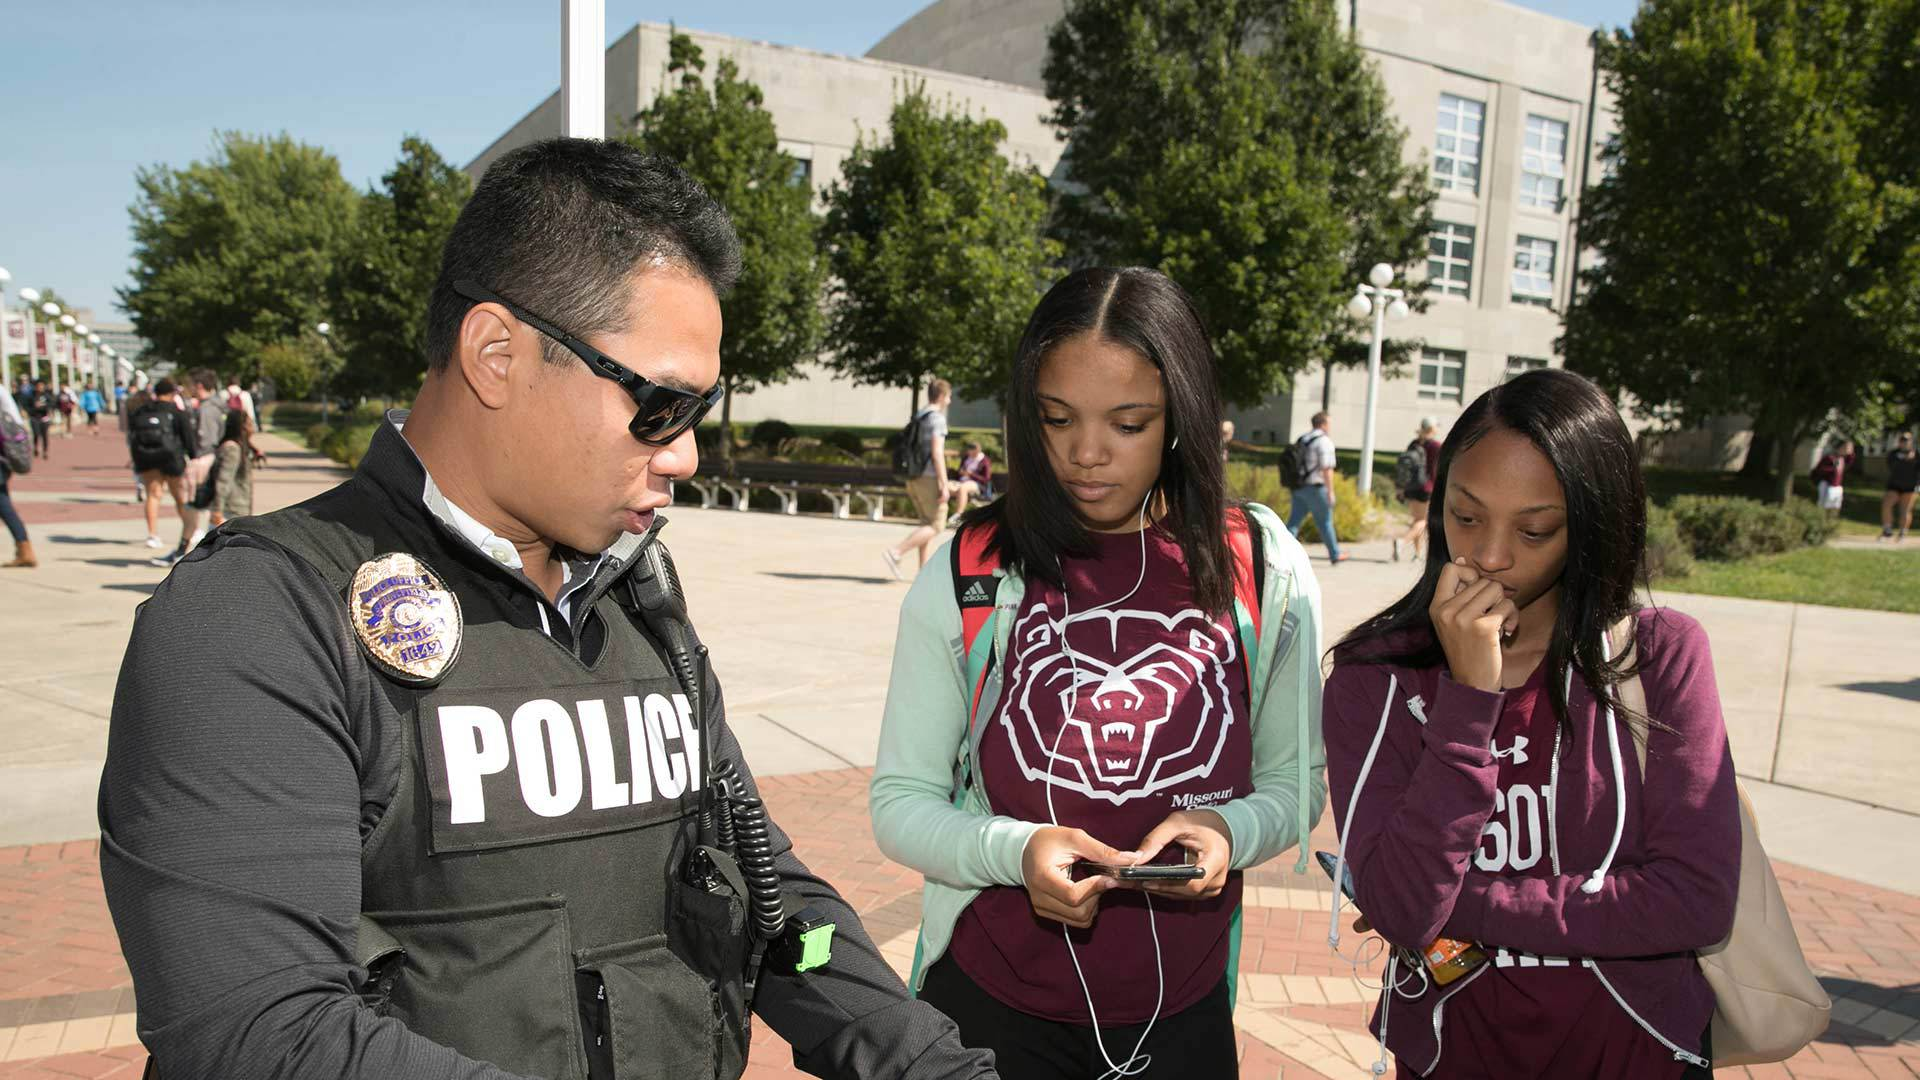 Police officer discussing job details with Missouri State University students who are interested in criminology.